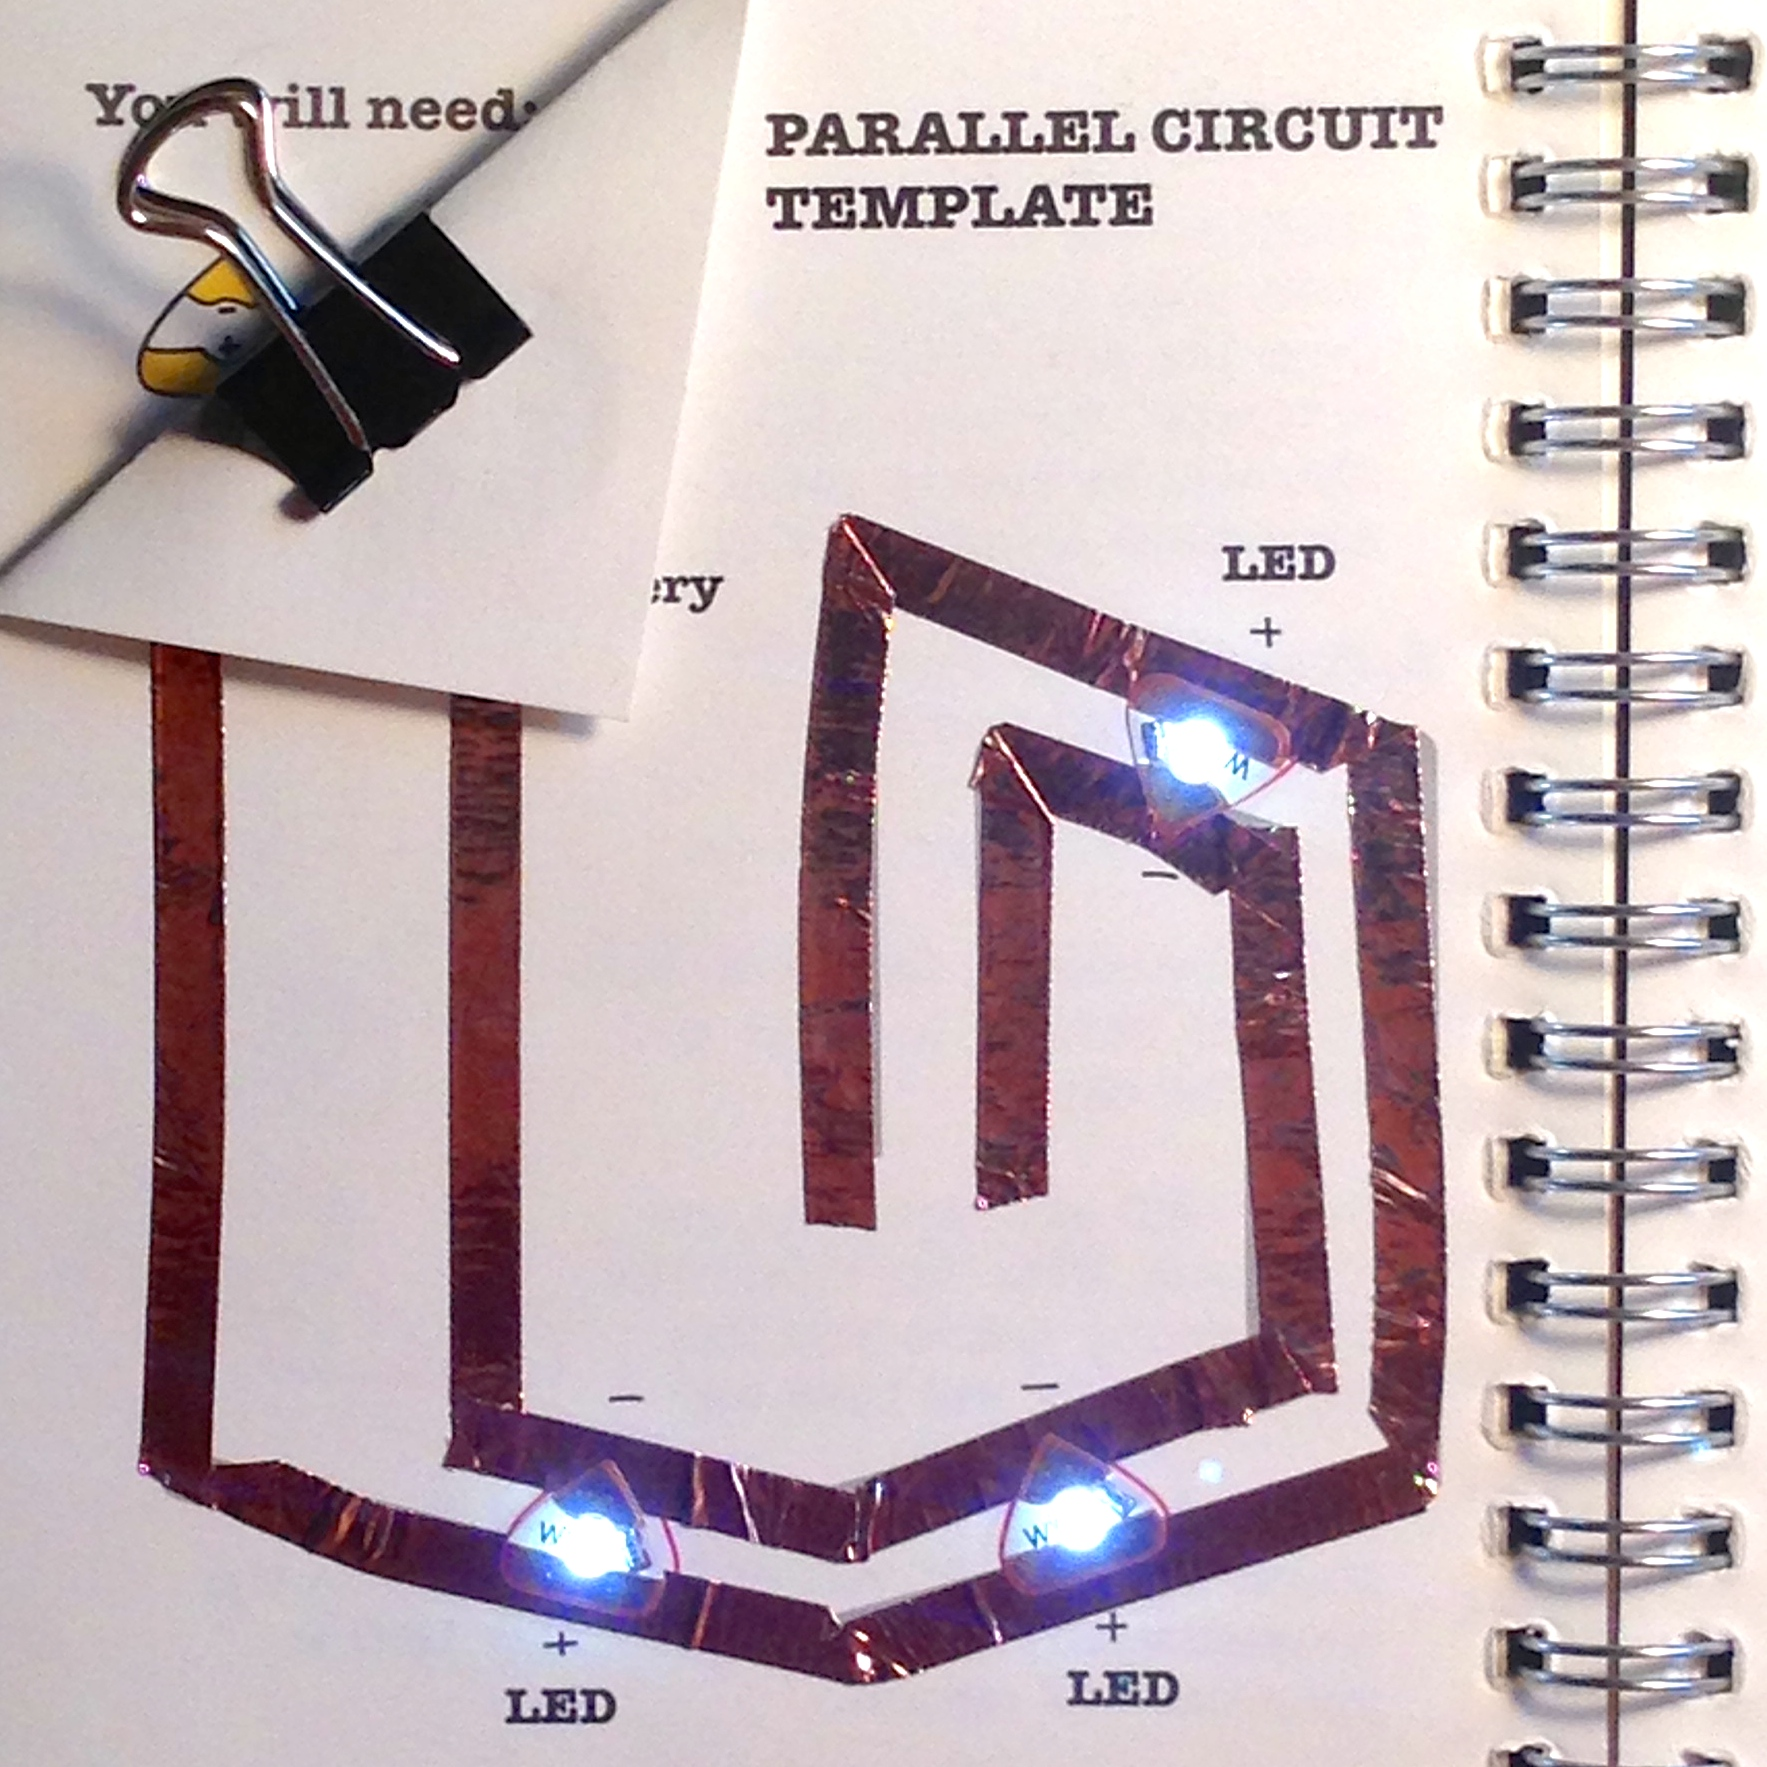 Learn Chibitronics Logic Diagram Template Parallel Circuit Tutorial